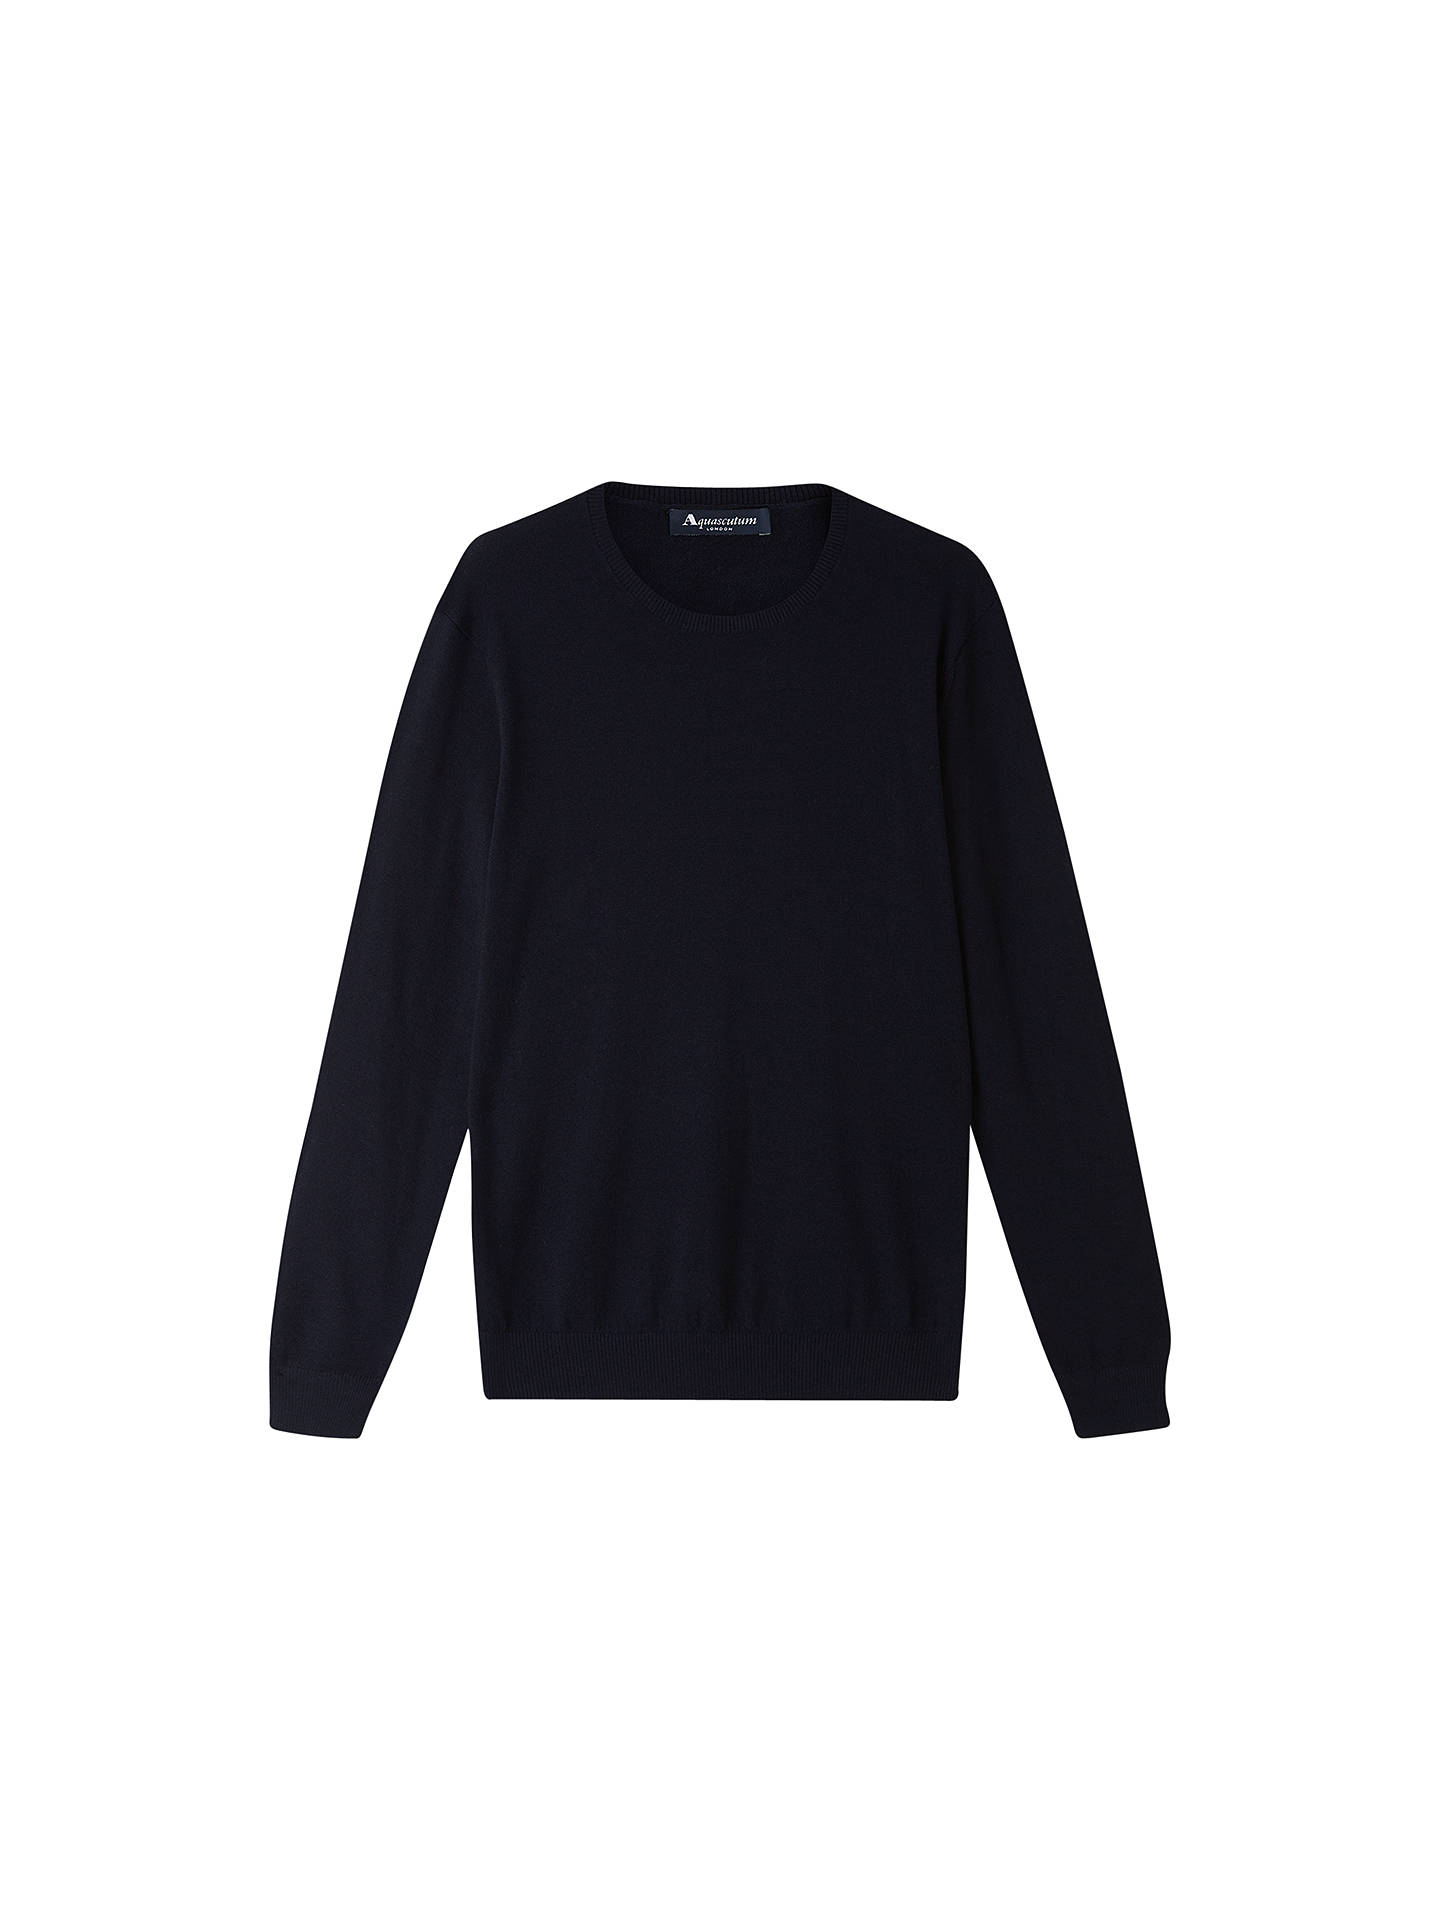 Aquascutum Merino Crew Neck Jumper, Navy at John Lewis